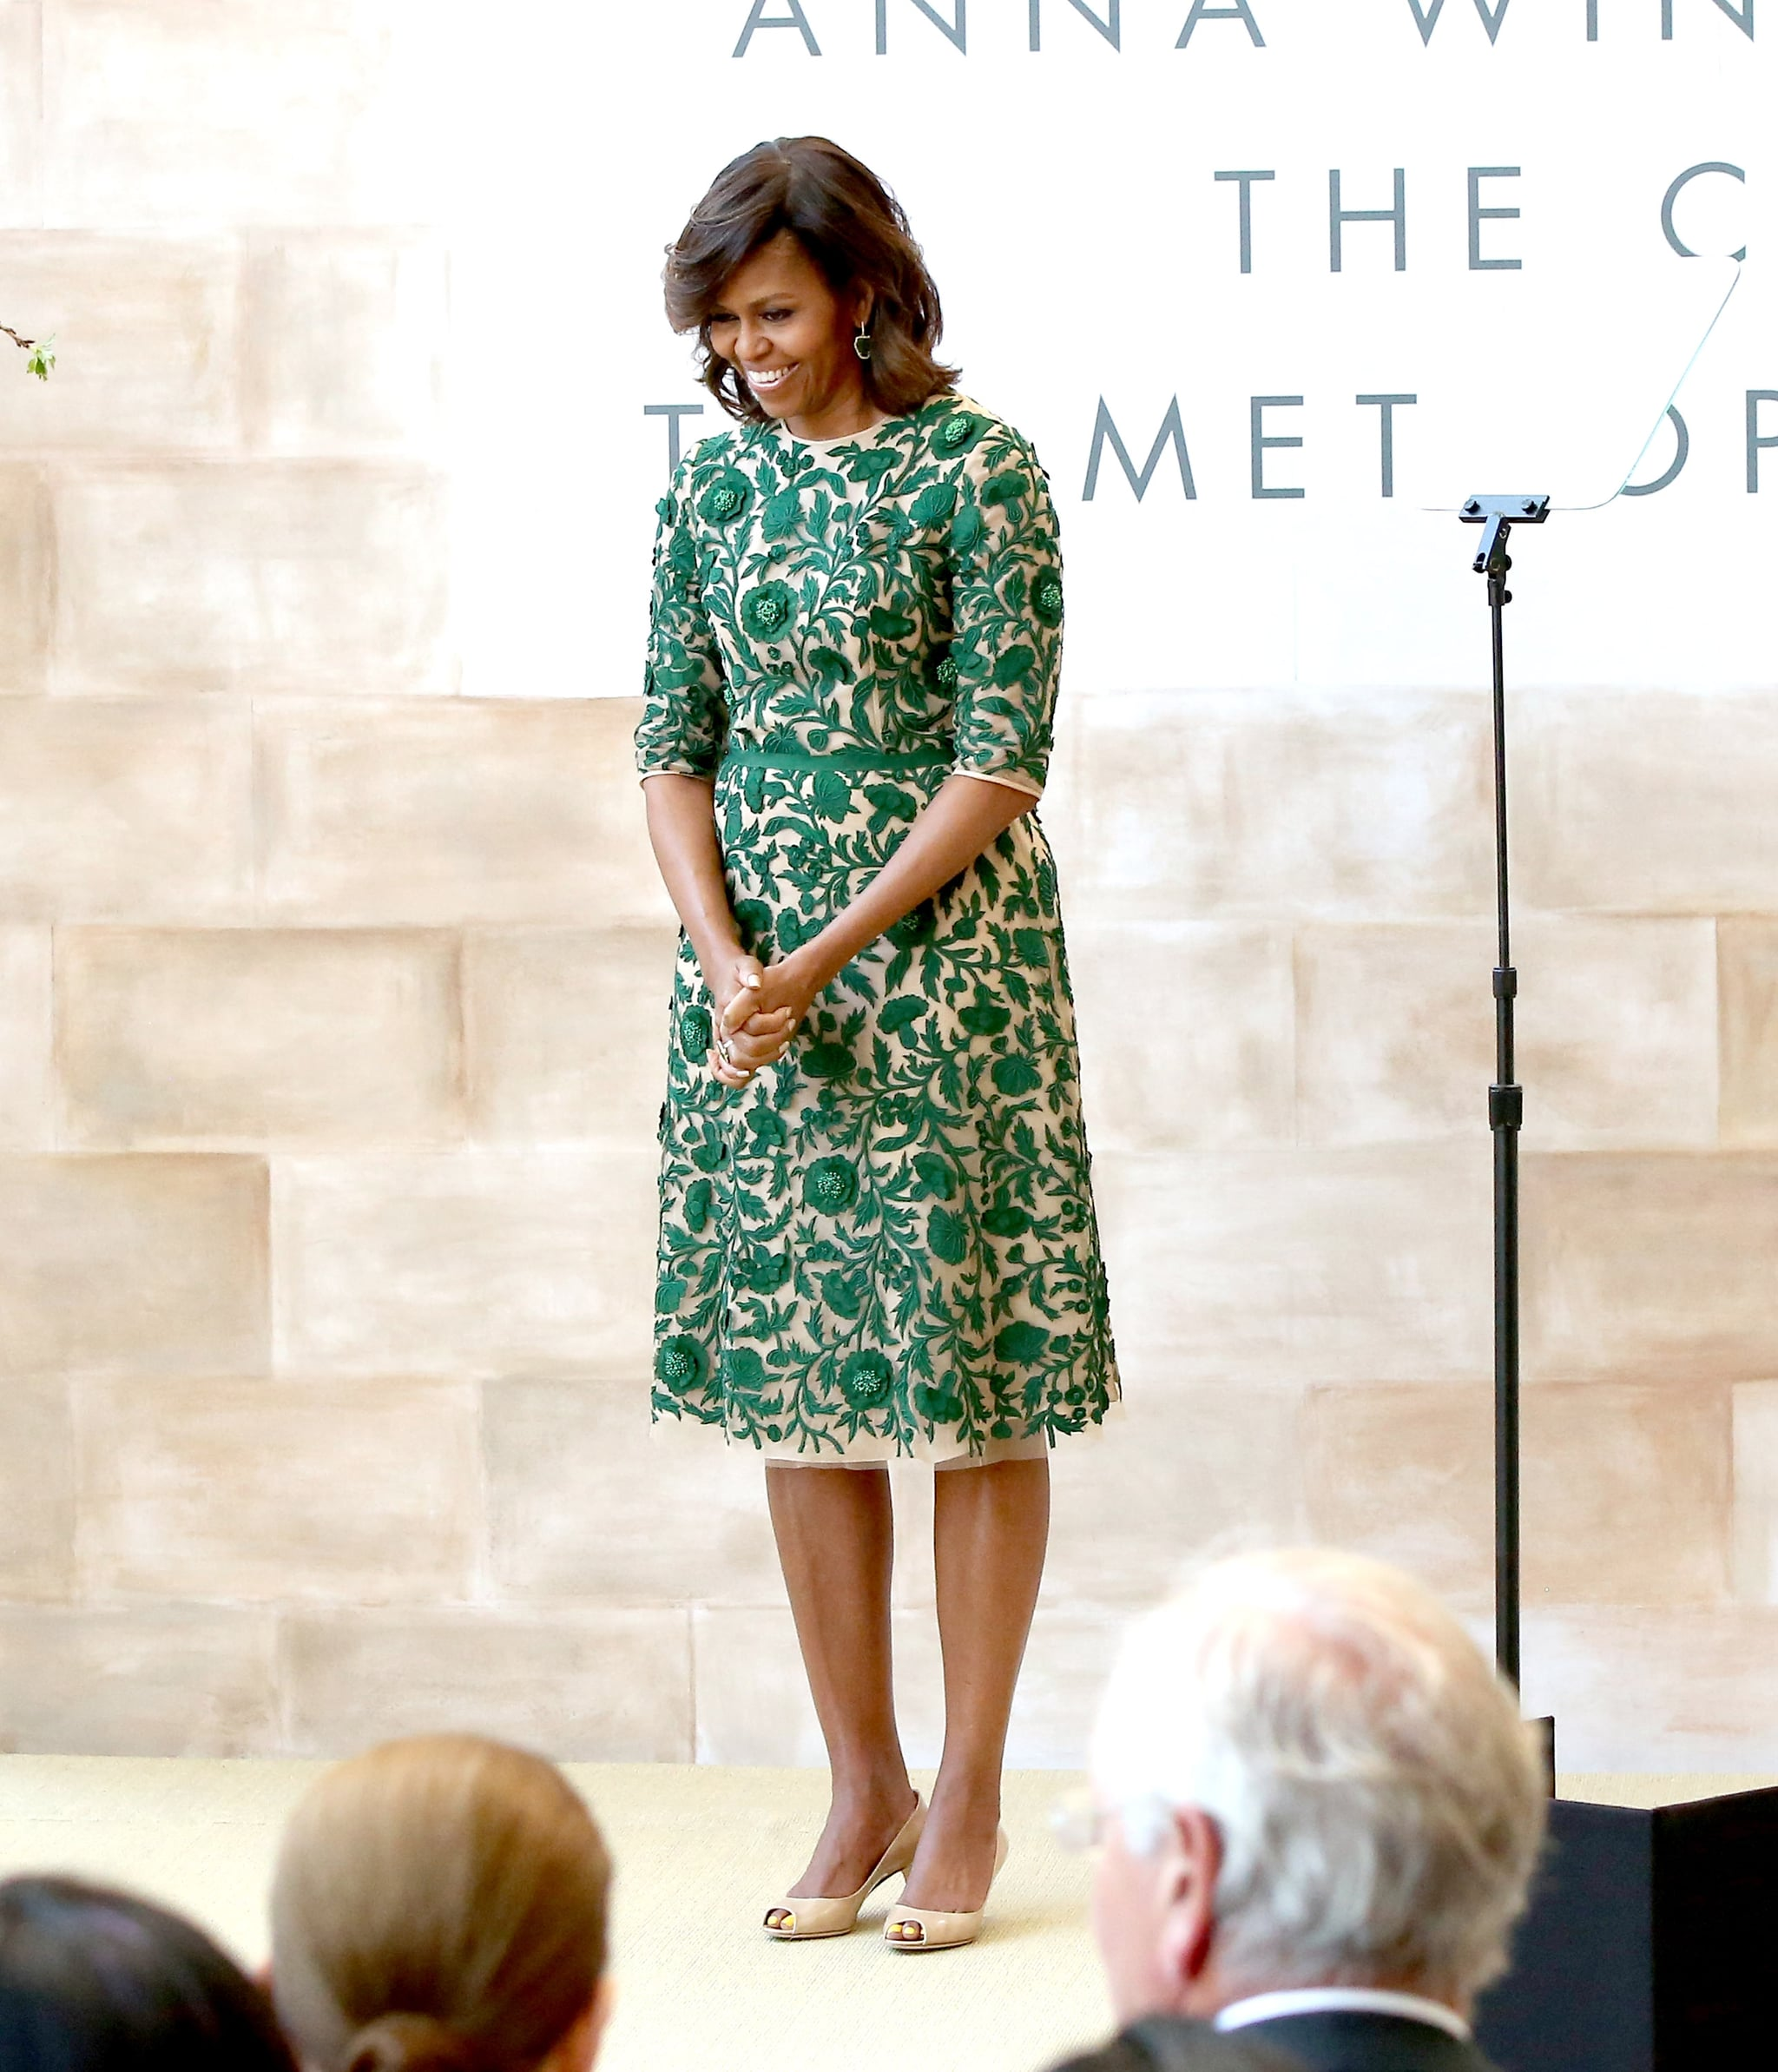 The first lady cut the ribbon at the Anna Wintour Costume Center Grand Opening in a custom floral-appliqué Naeem Khan dress.